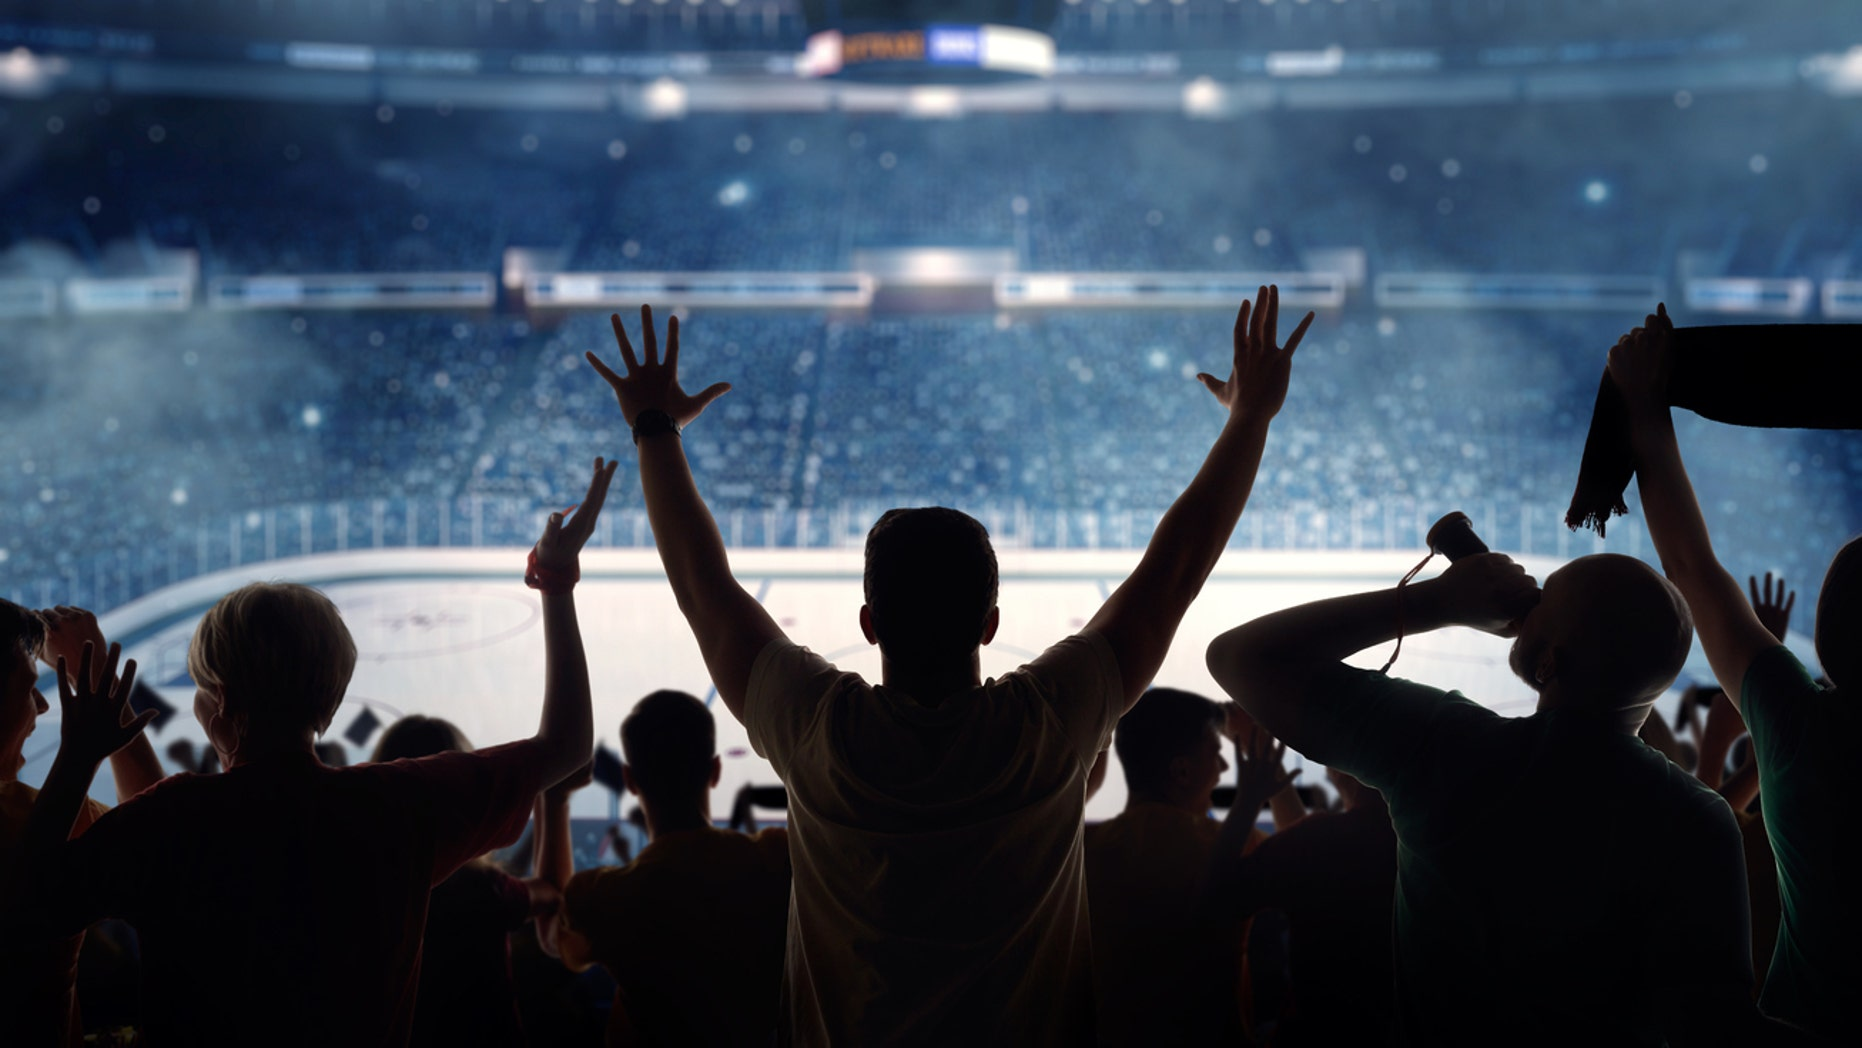 Watching a hockey game live can more than double a fan's heart rate.